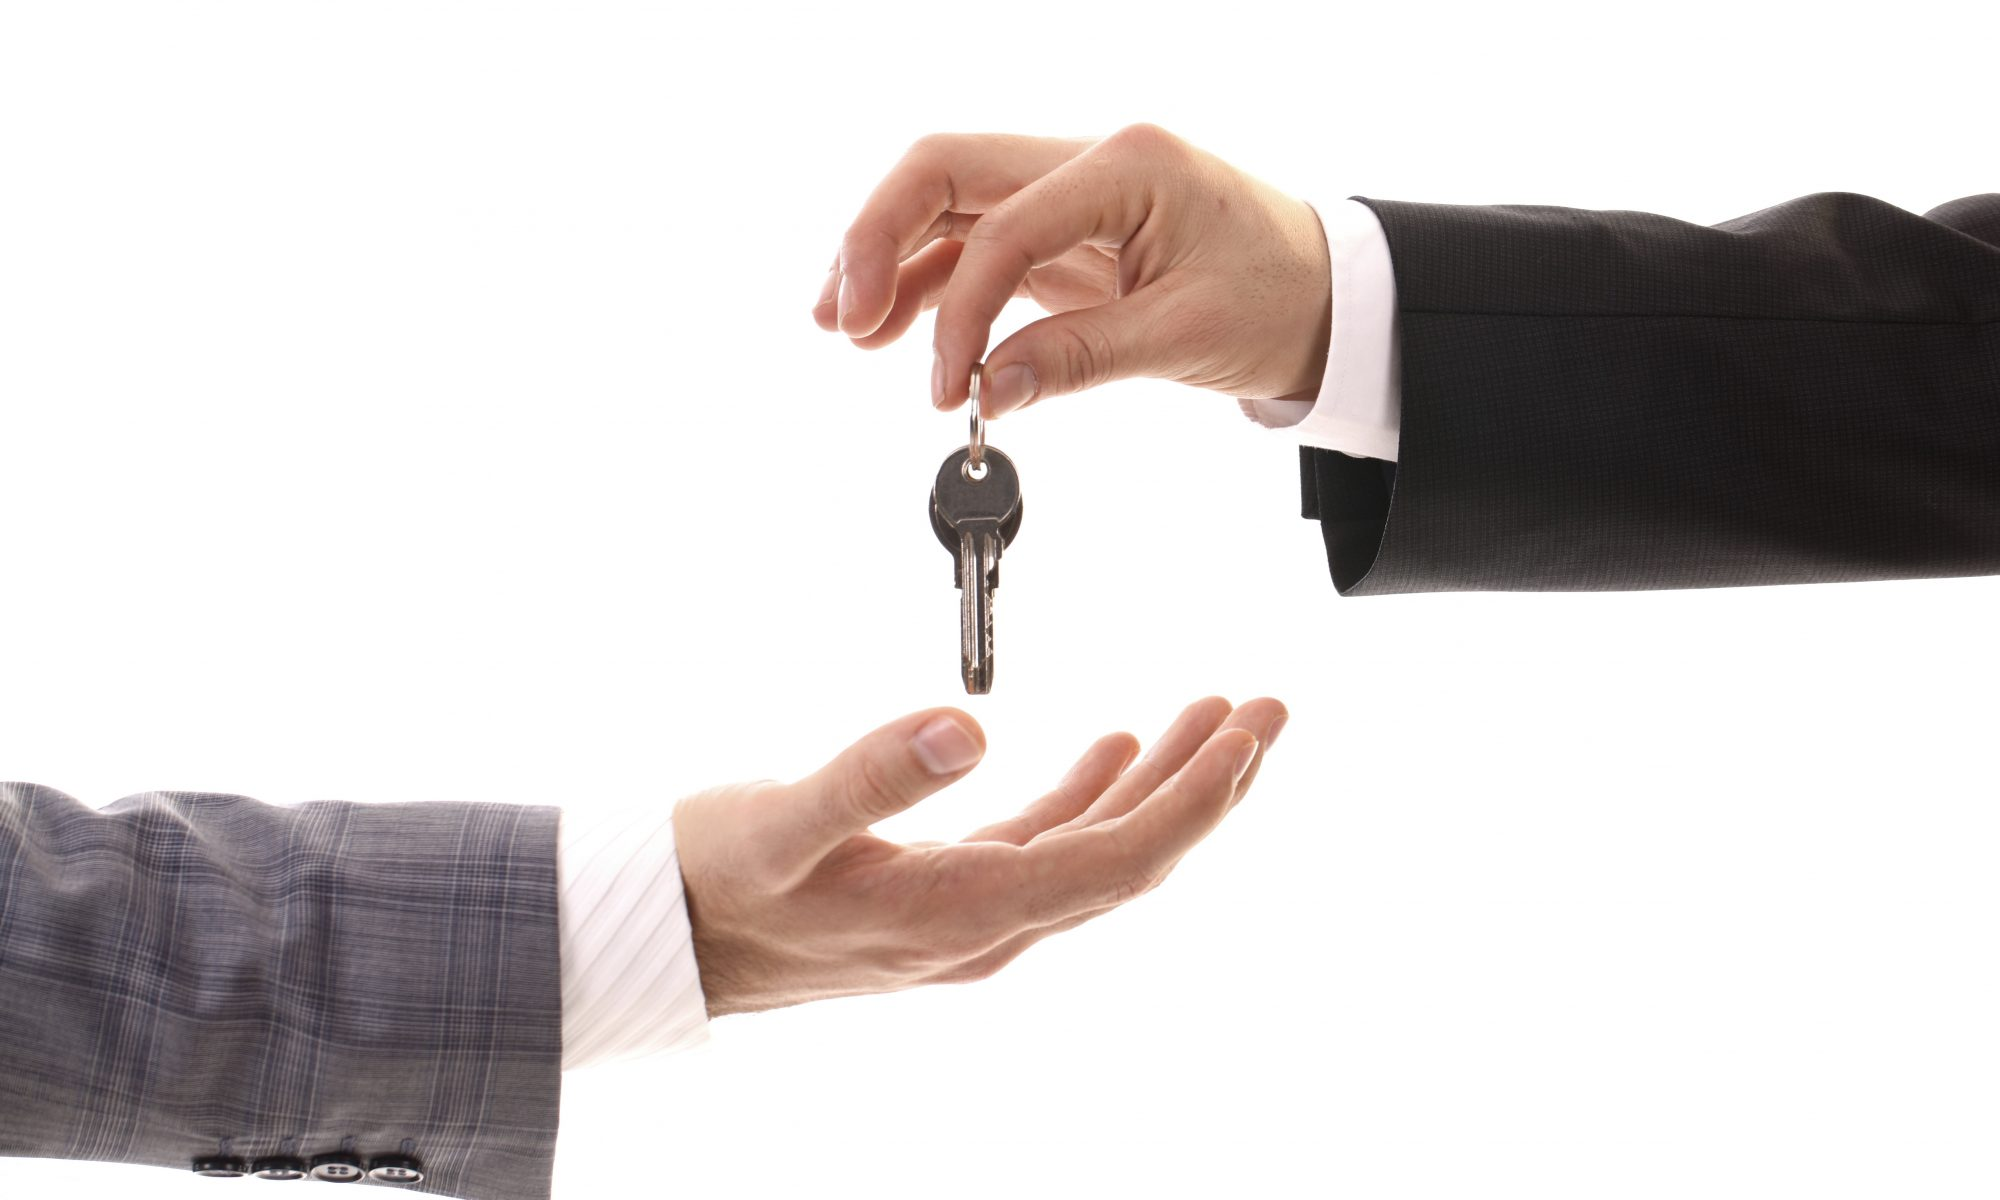 first time home-buyers mage with key being passed